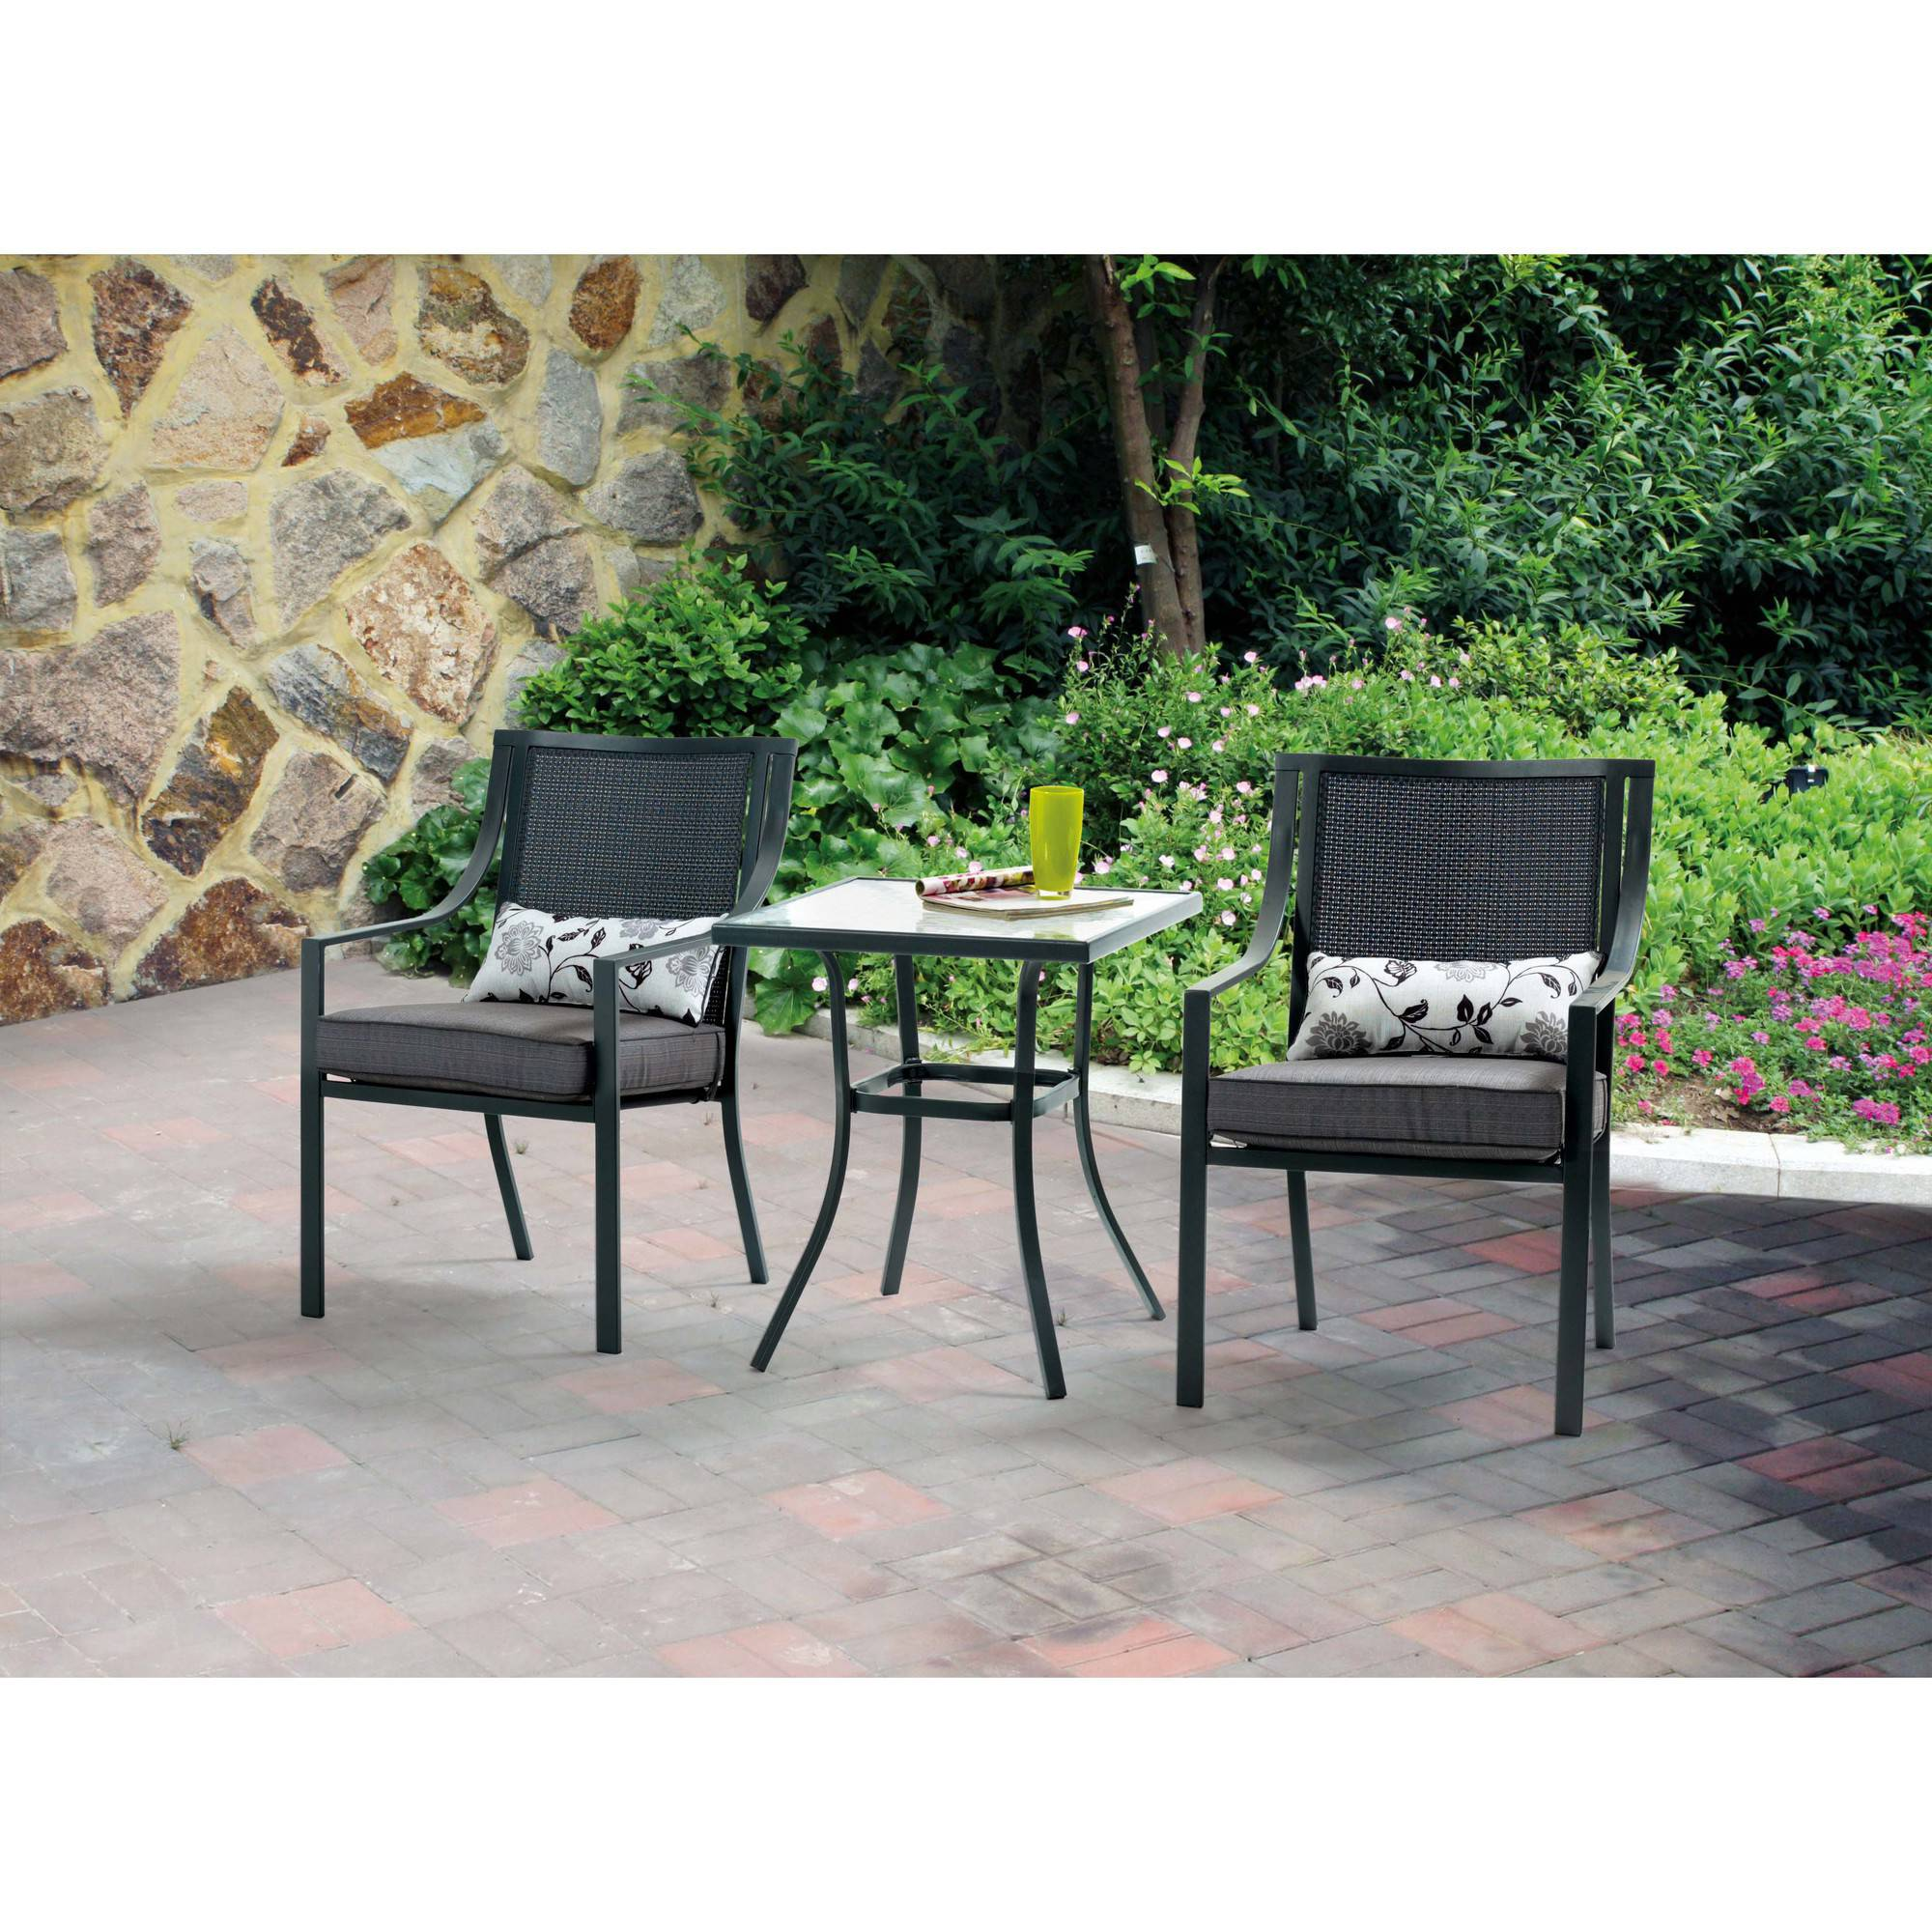 Mainstays Alexandra Square 3 Piece Outdoor Bistro Set   Walmart.com